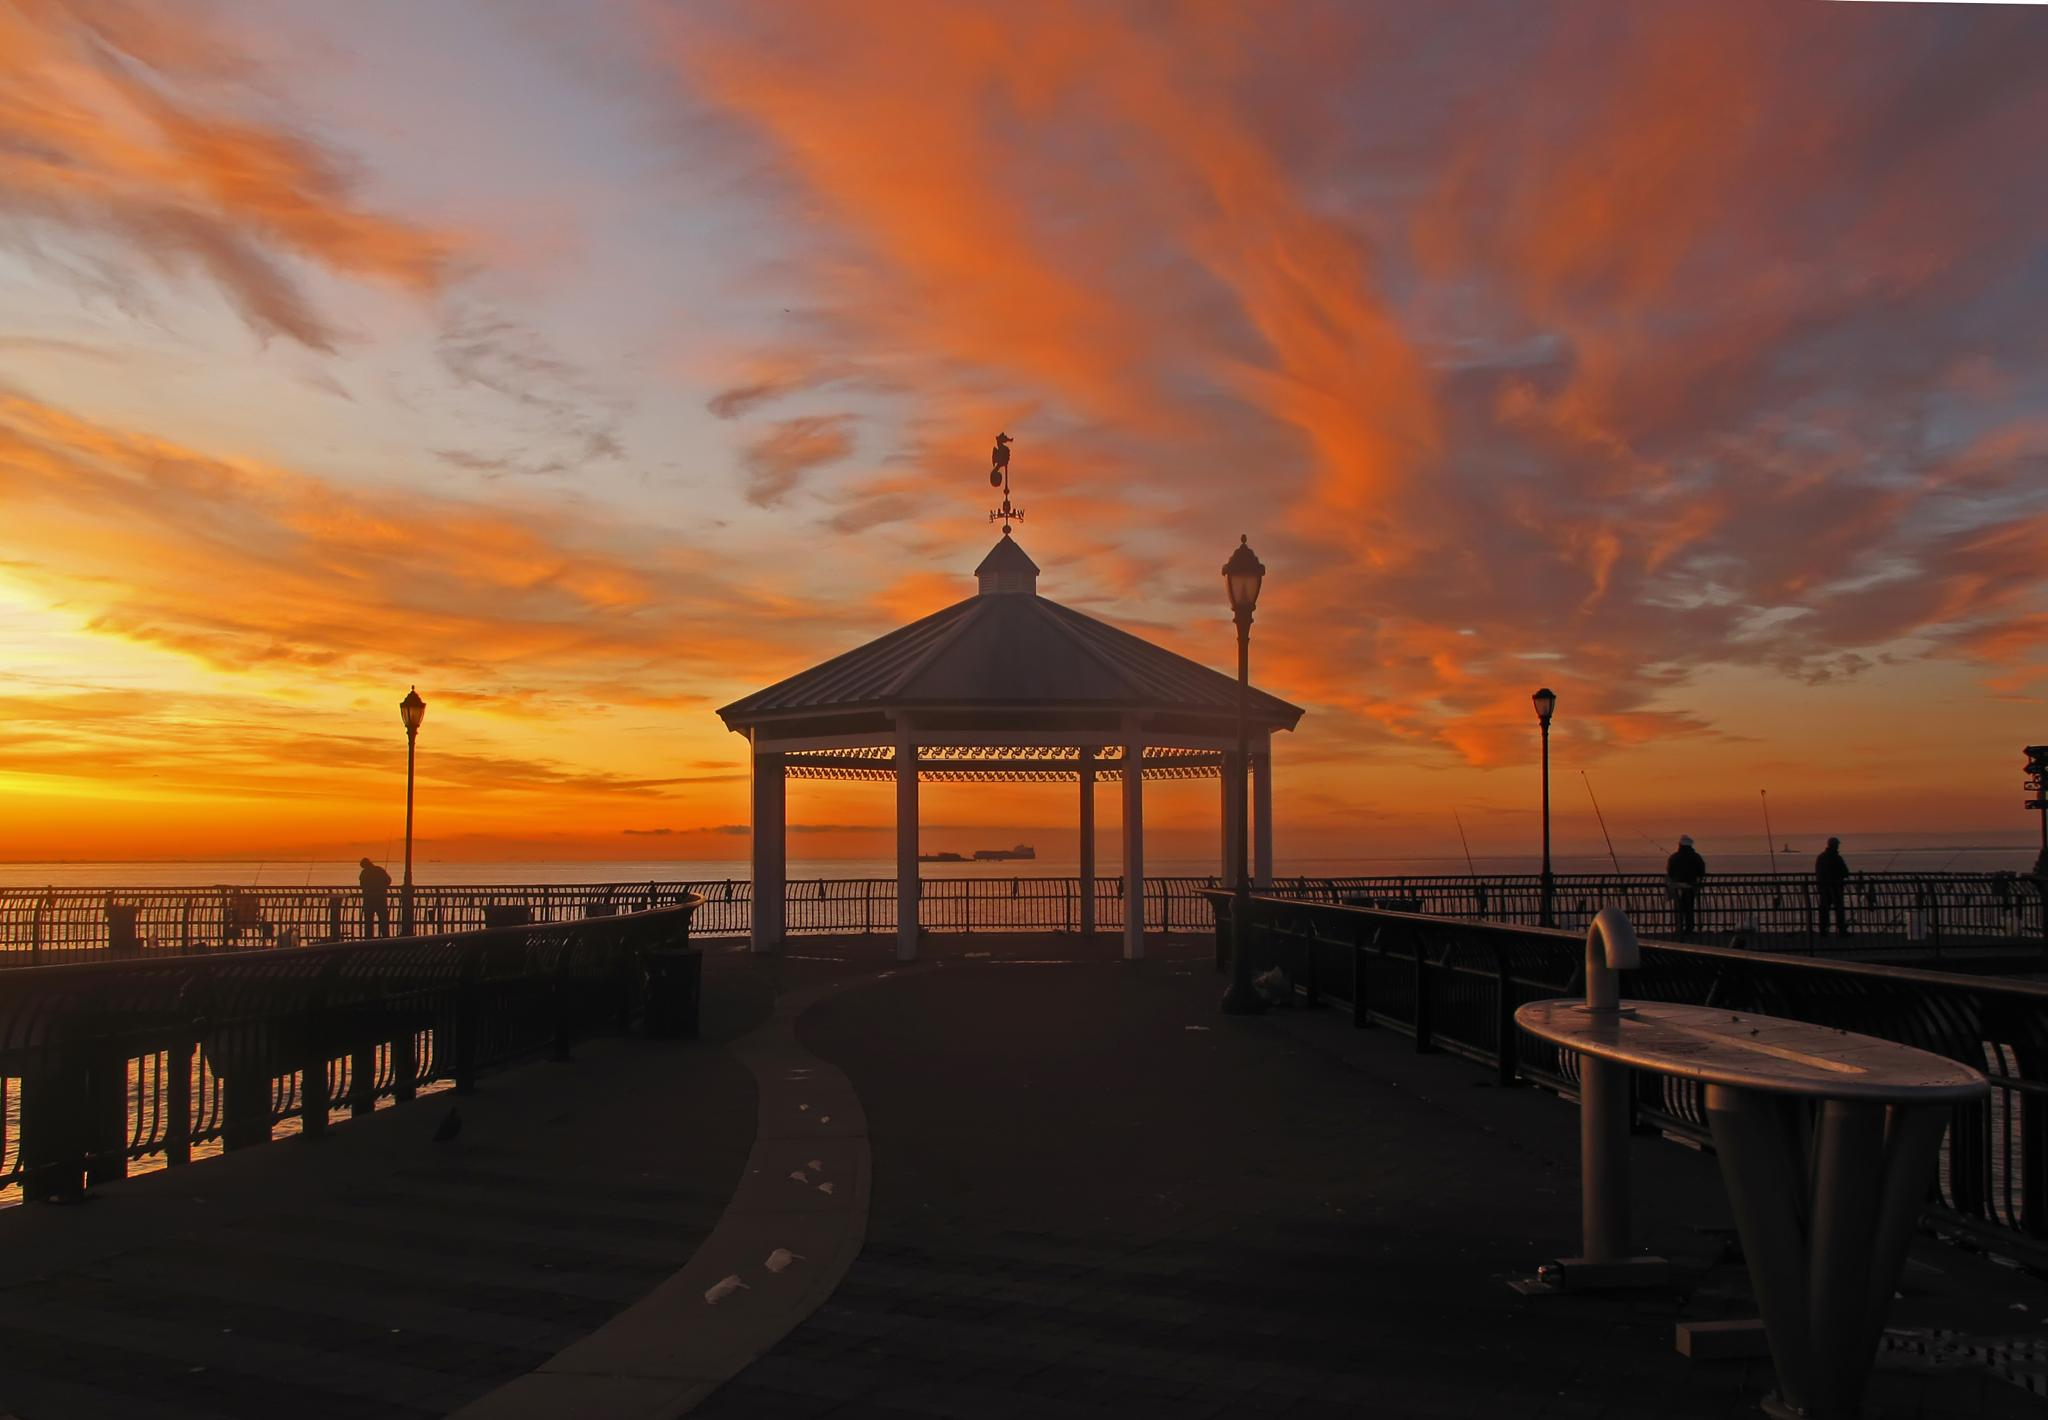 sunrise at the fisherman's pier by marianne troia